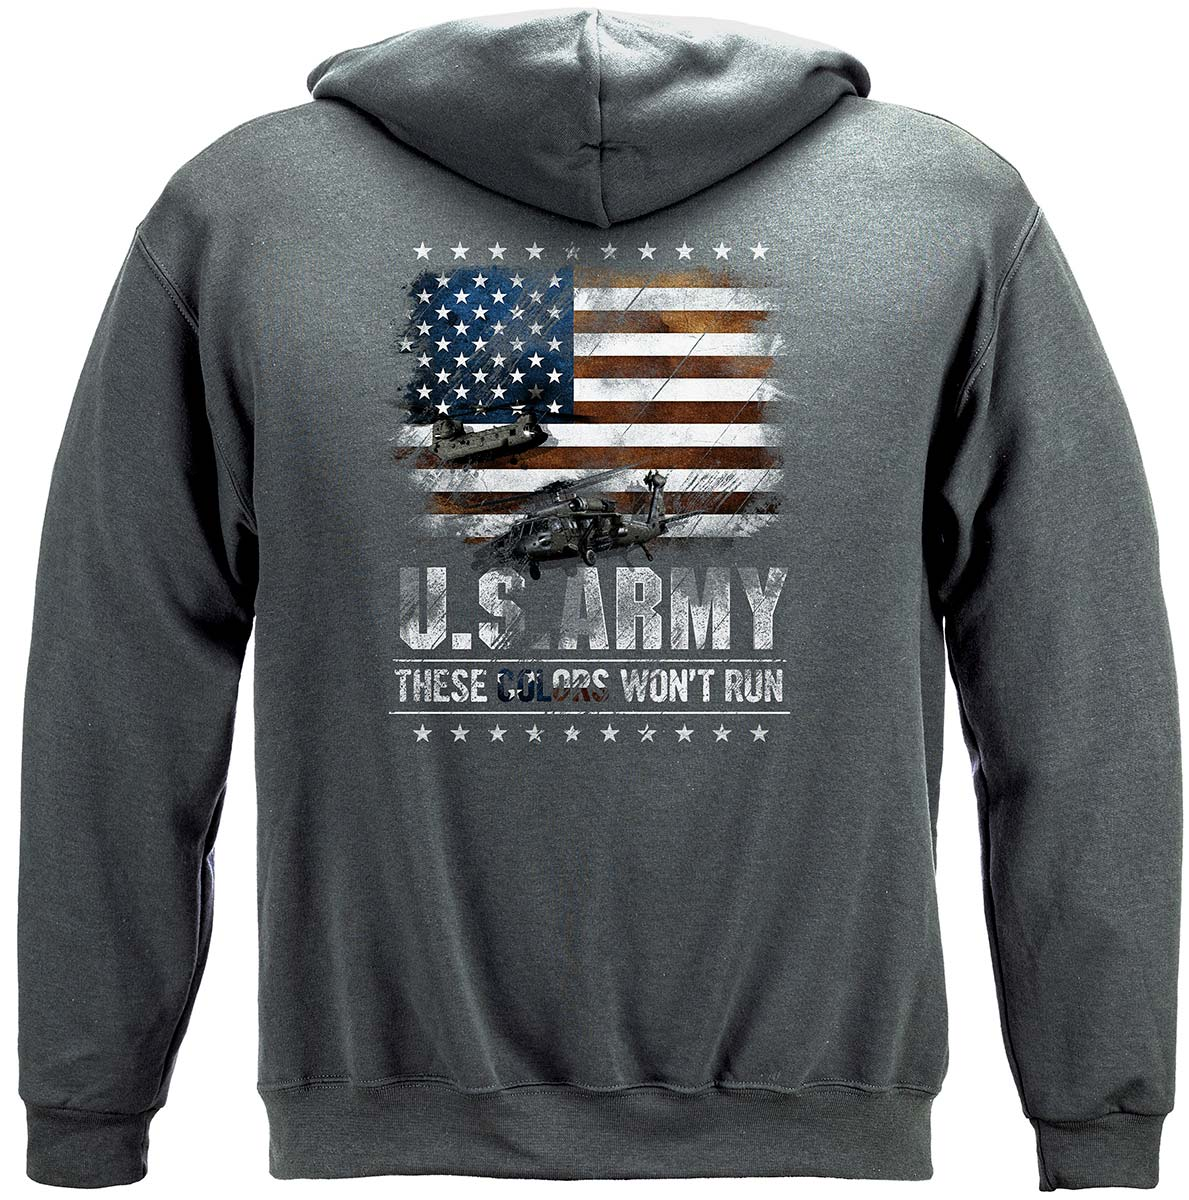 Army These Color Don't Run Premium Hooded Sweat Shirt